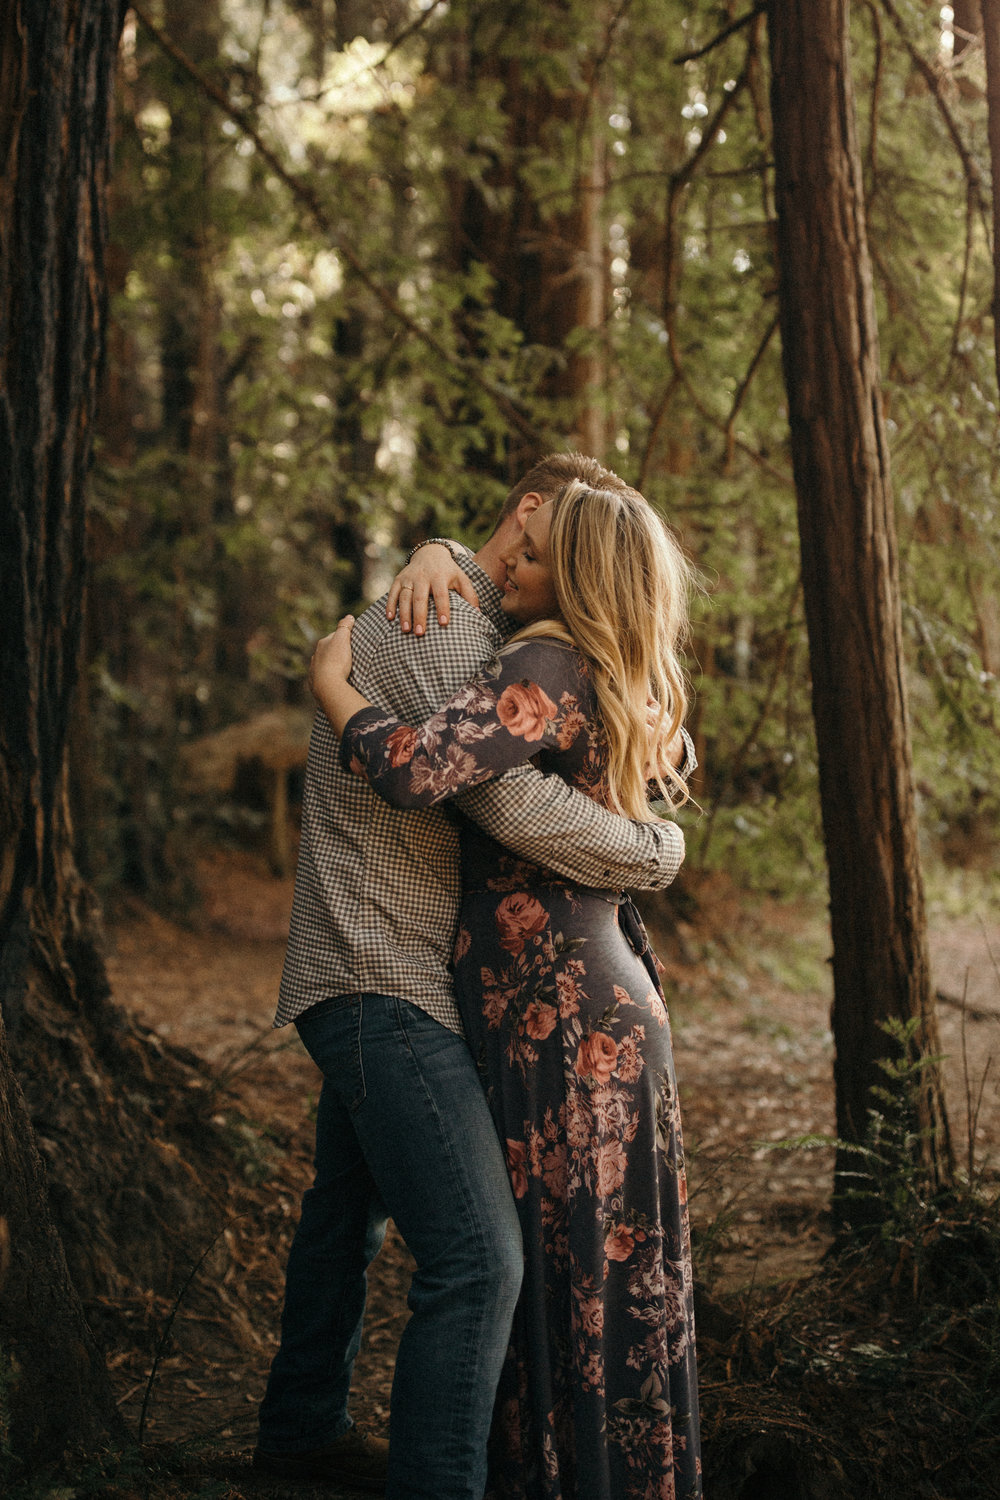 sanfrancisco-california-wedding-photographer-napa-california-engagements-west-marin-california-engagements-93.jpg